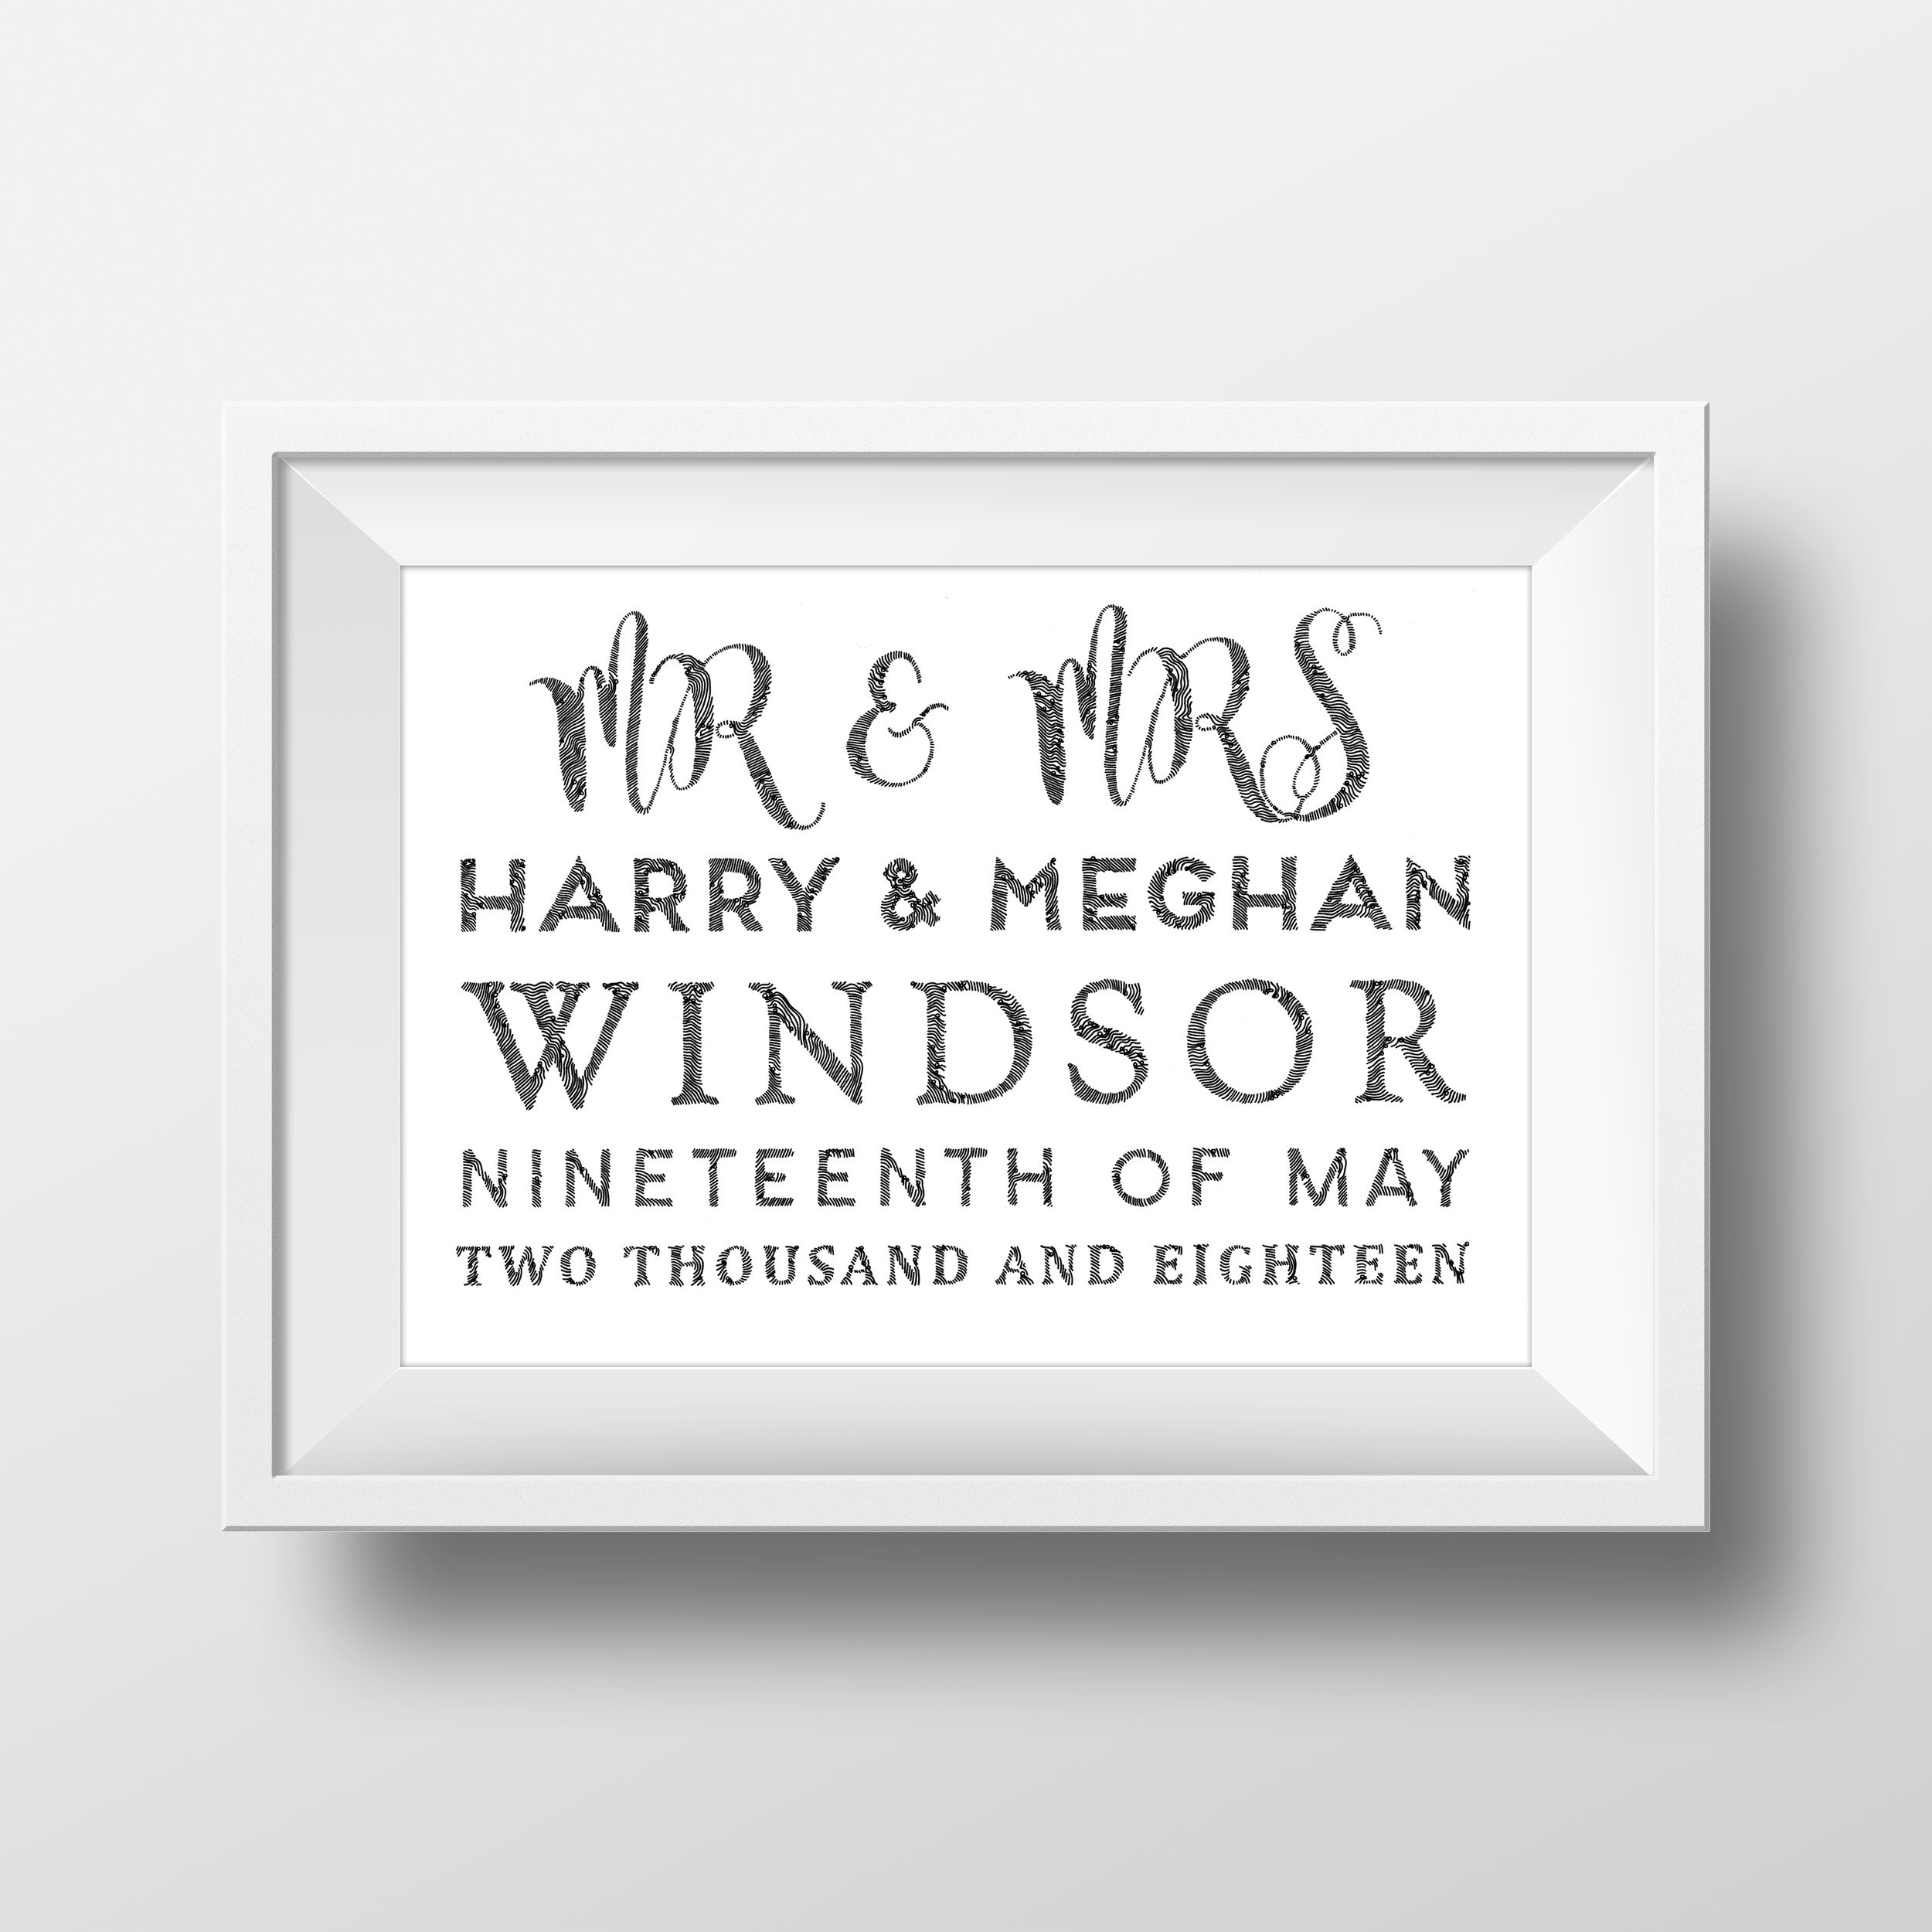 PERSONALISED GIFTS - The perfect wedding gift.